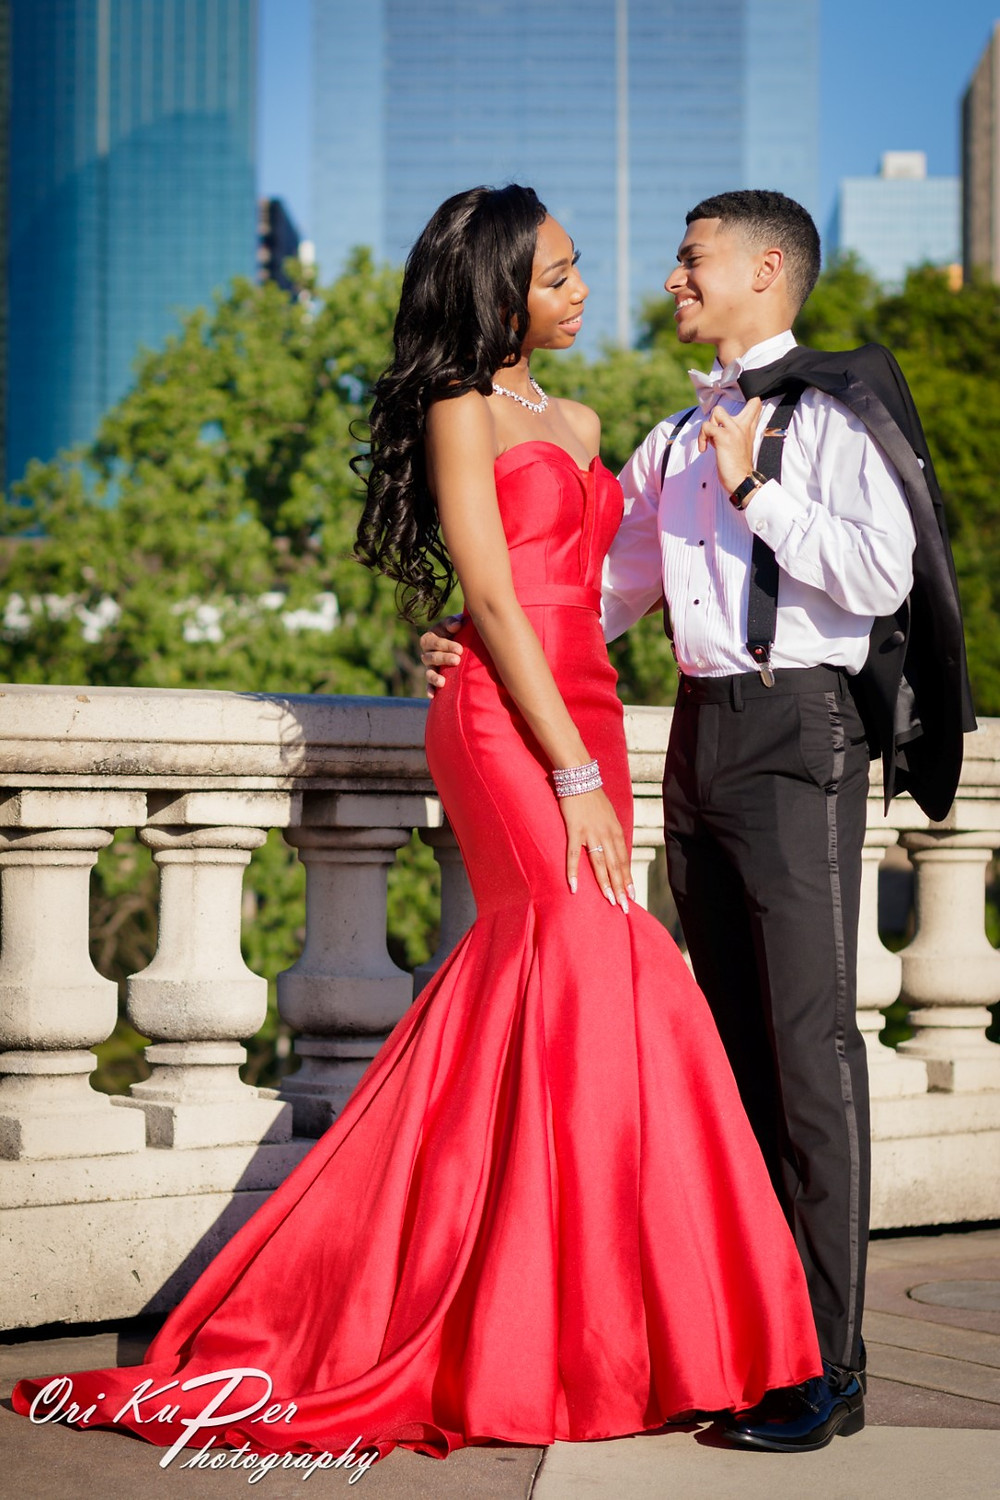 Prom night photographer session in Houston TX